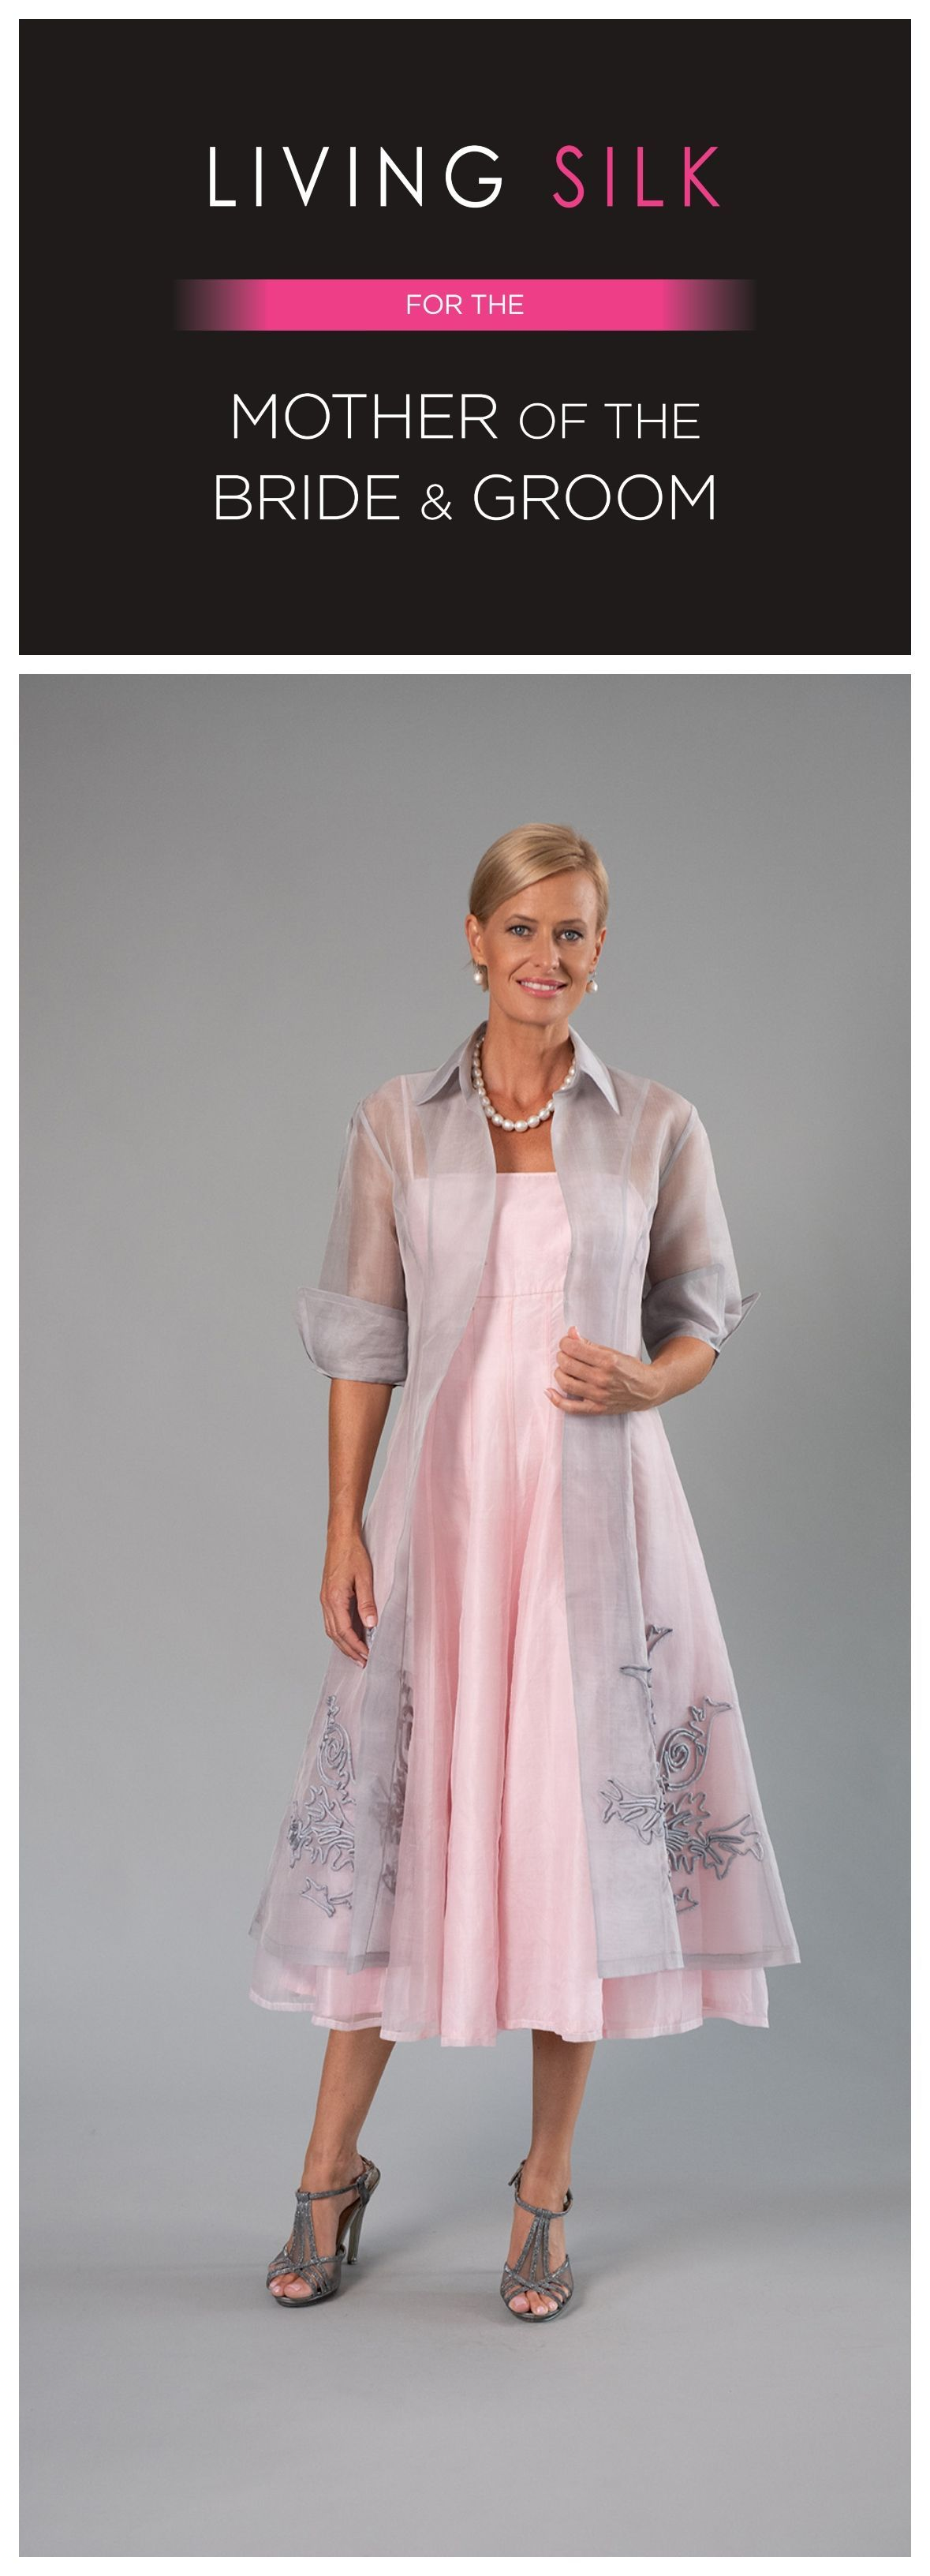 Silver and Soft Pink Dress and Coat for the Mother of the Bride / Groom from Living Silk